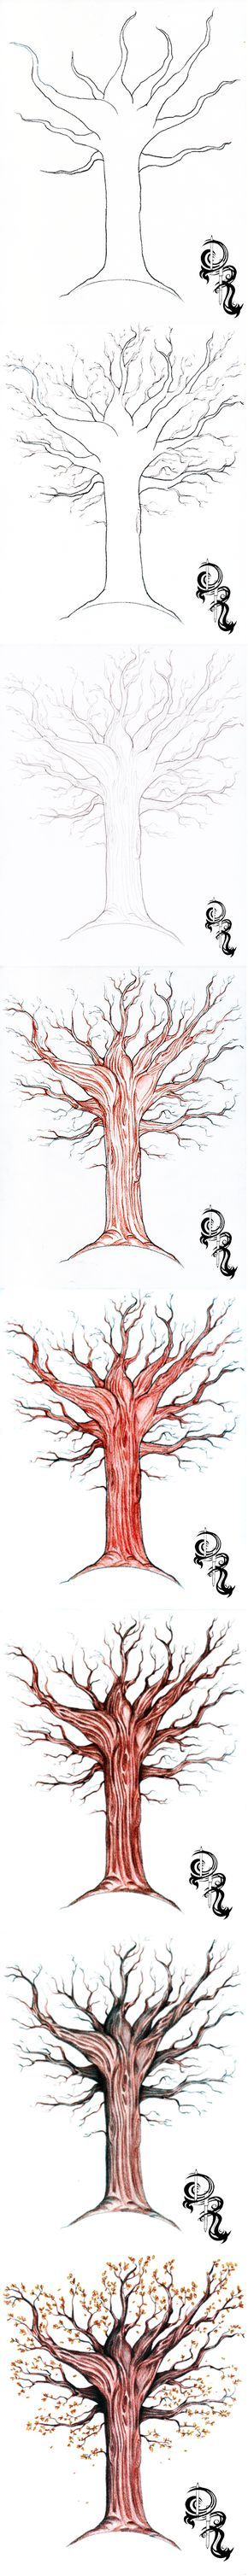 How to Draw an Autumn Tree with Colored Pencils. A step-by-step image of a colored pencil #artlesson by Derrick Rathgeber. Click the image for full details instructions on my blog page.